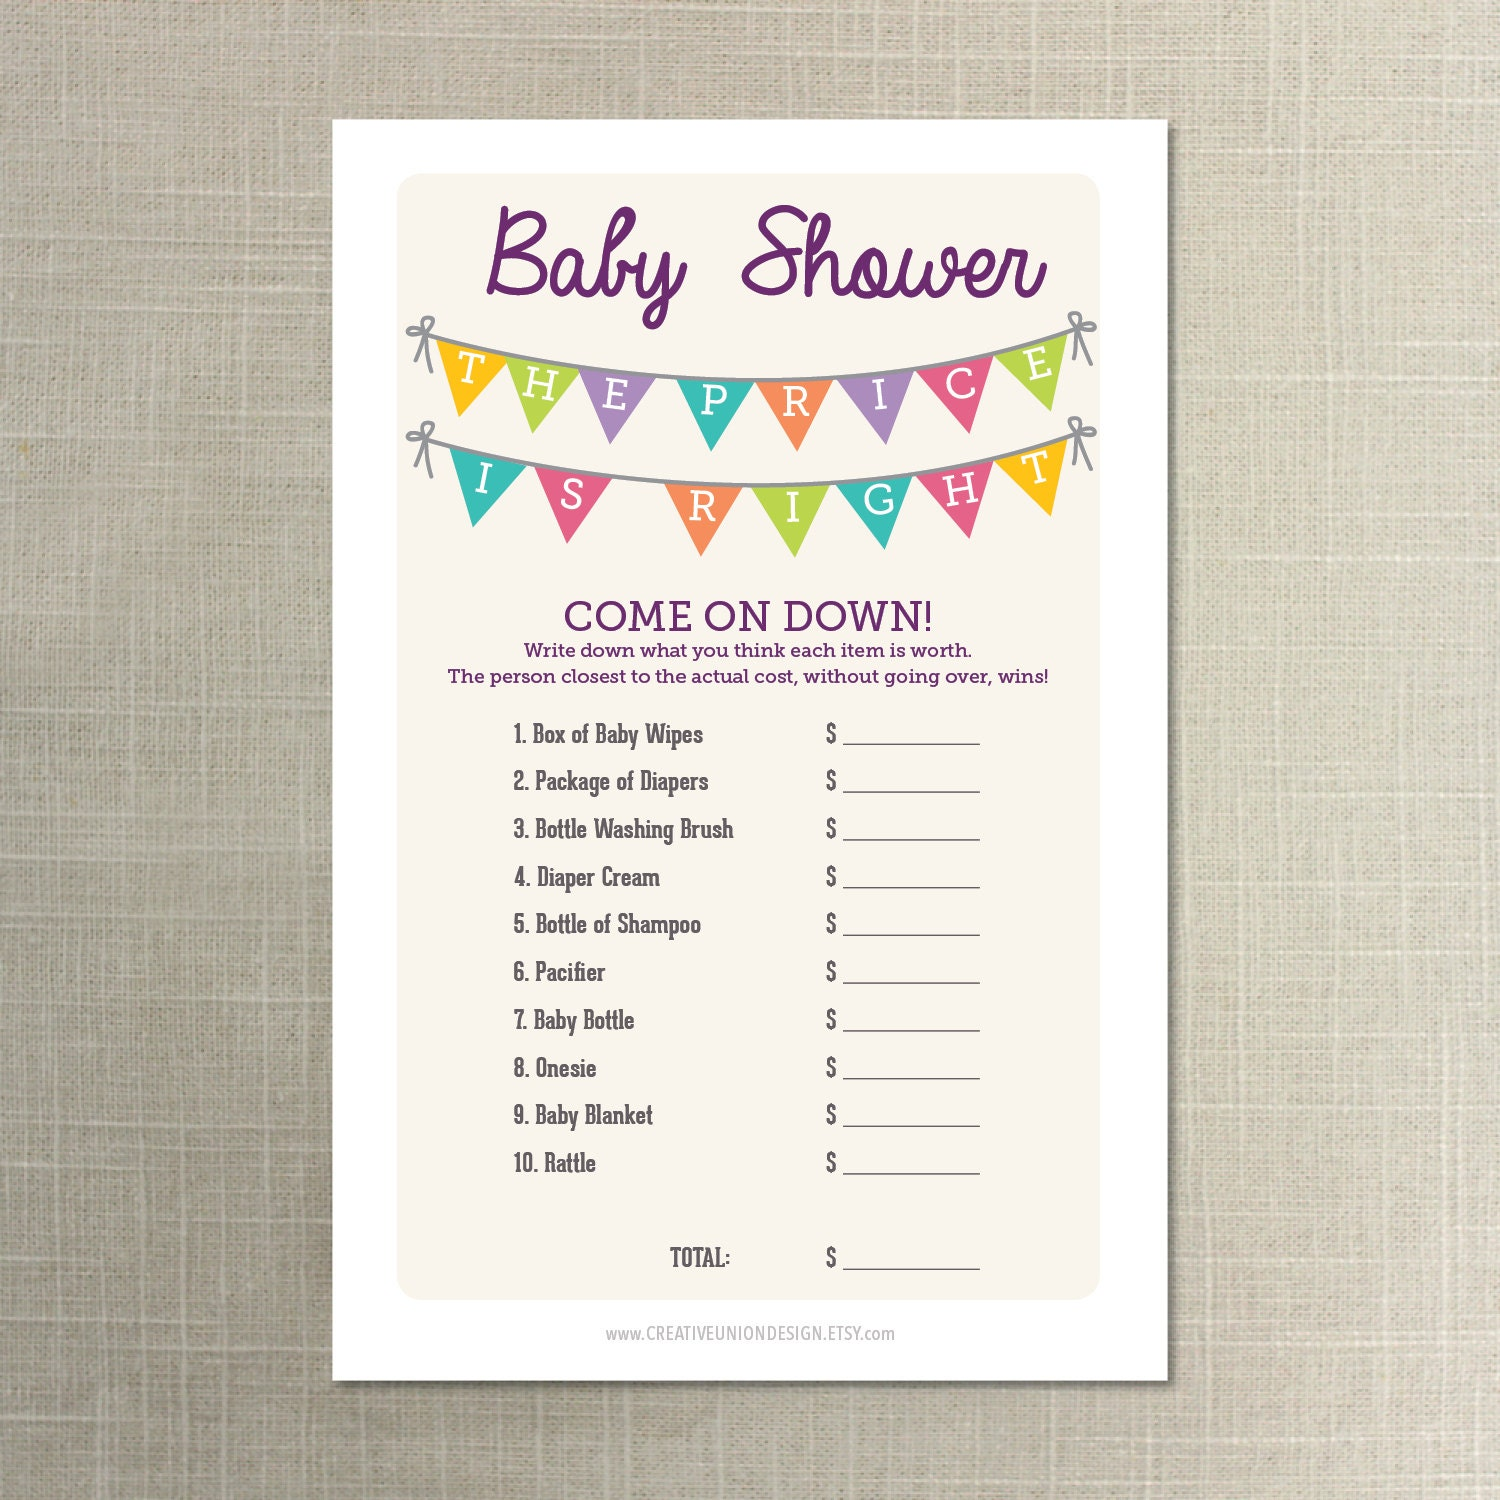 gt images for gt the price is right baby shower game free printable